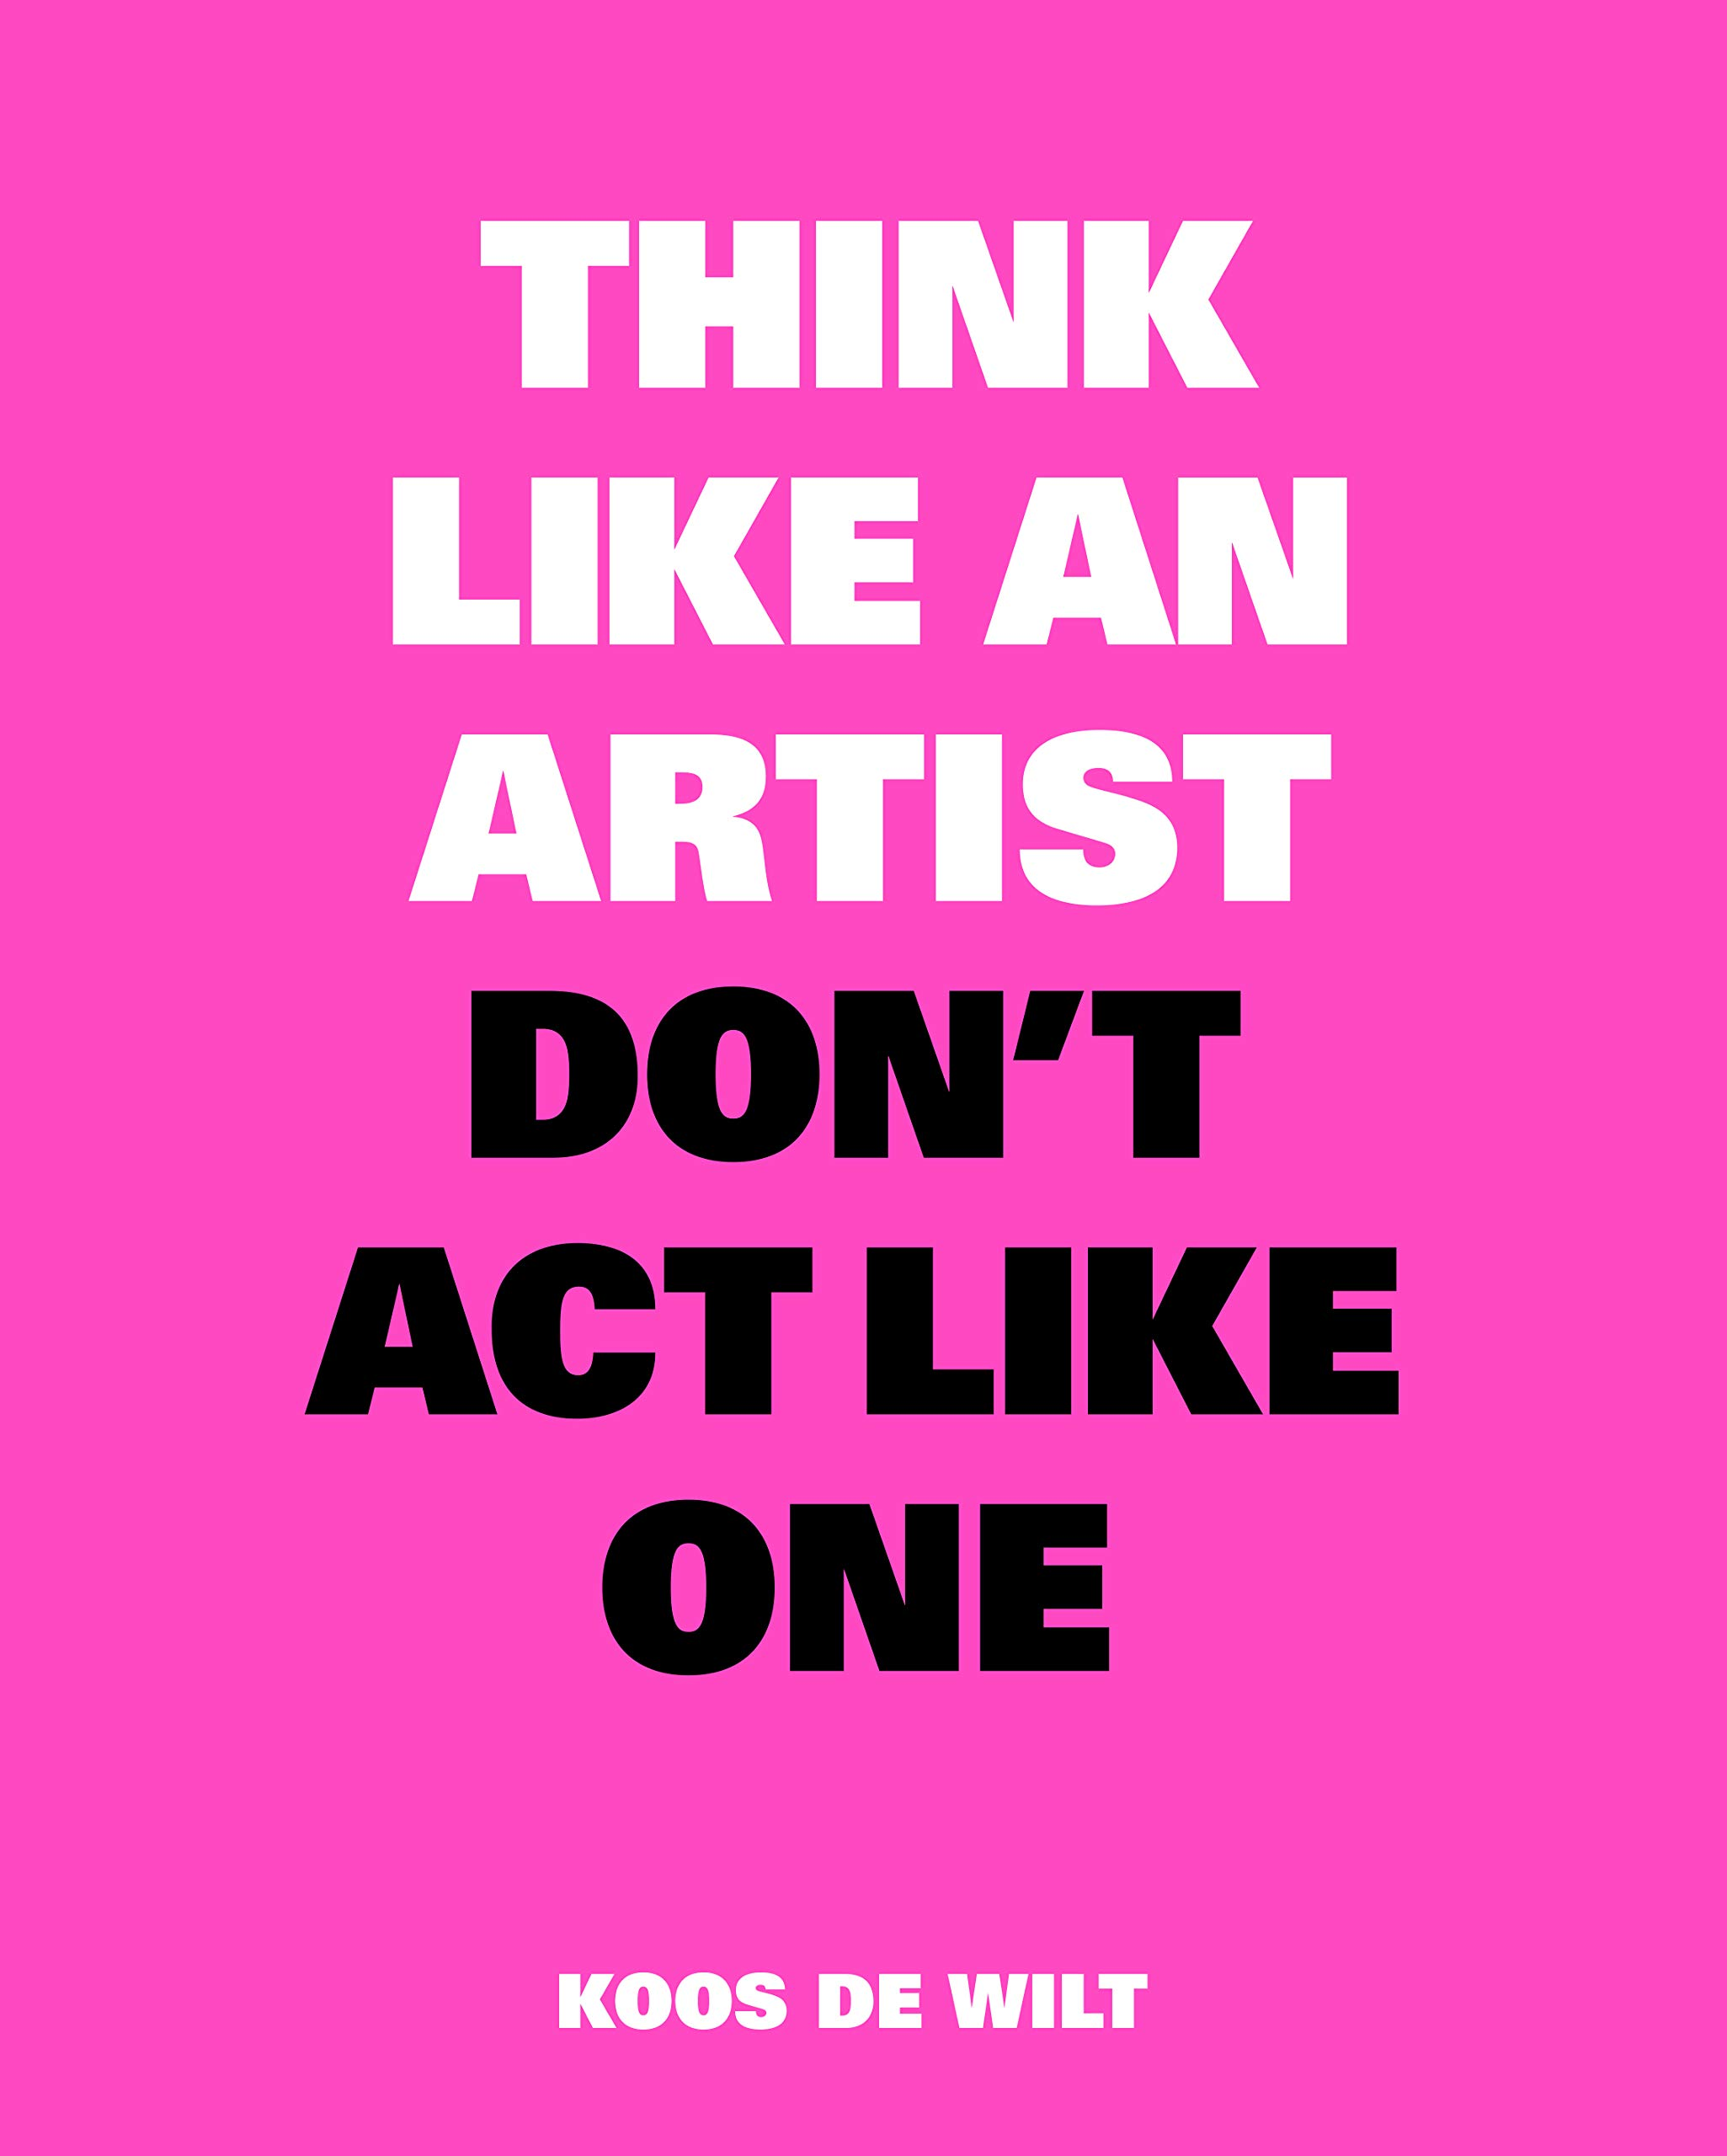 Think Like an Artist don't act like one Koos de Wilt